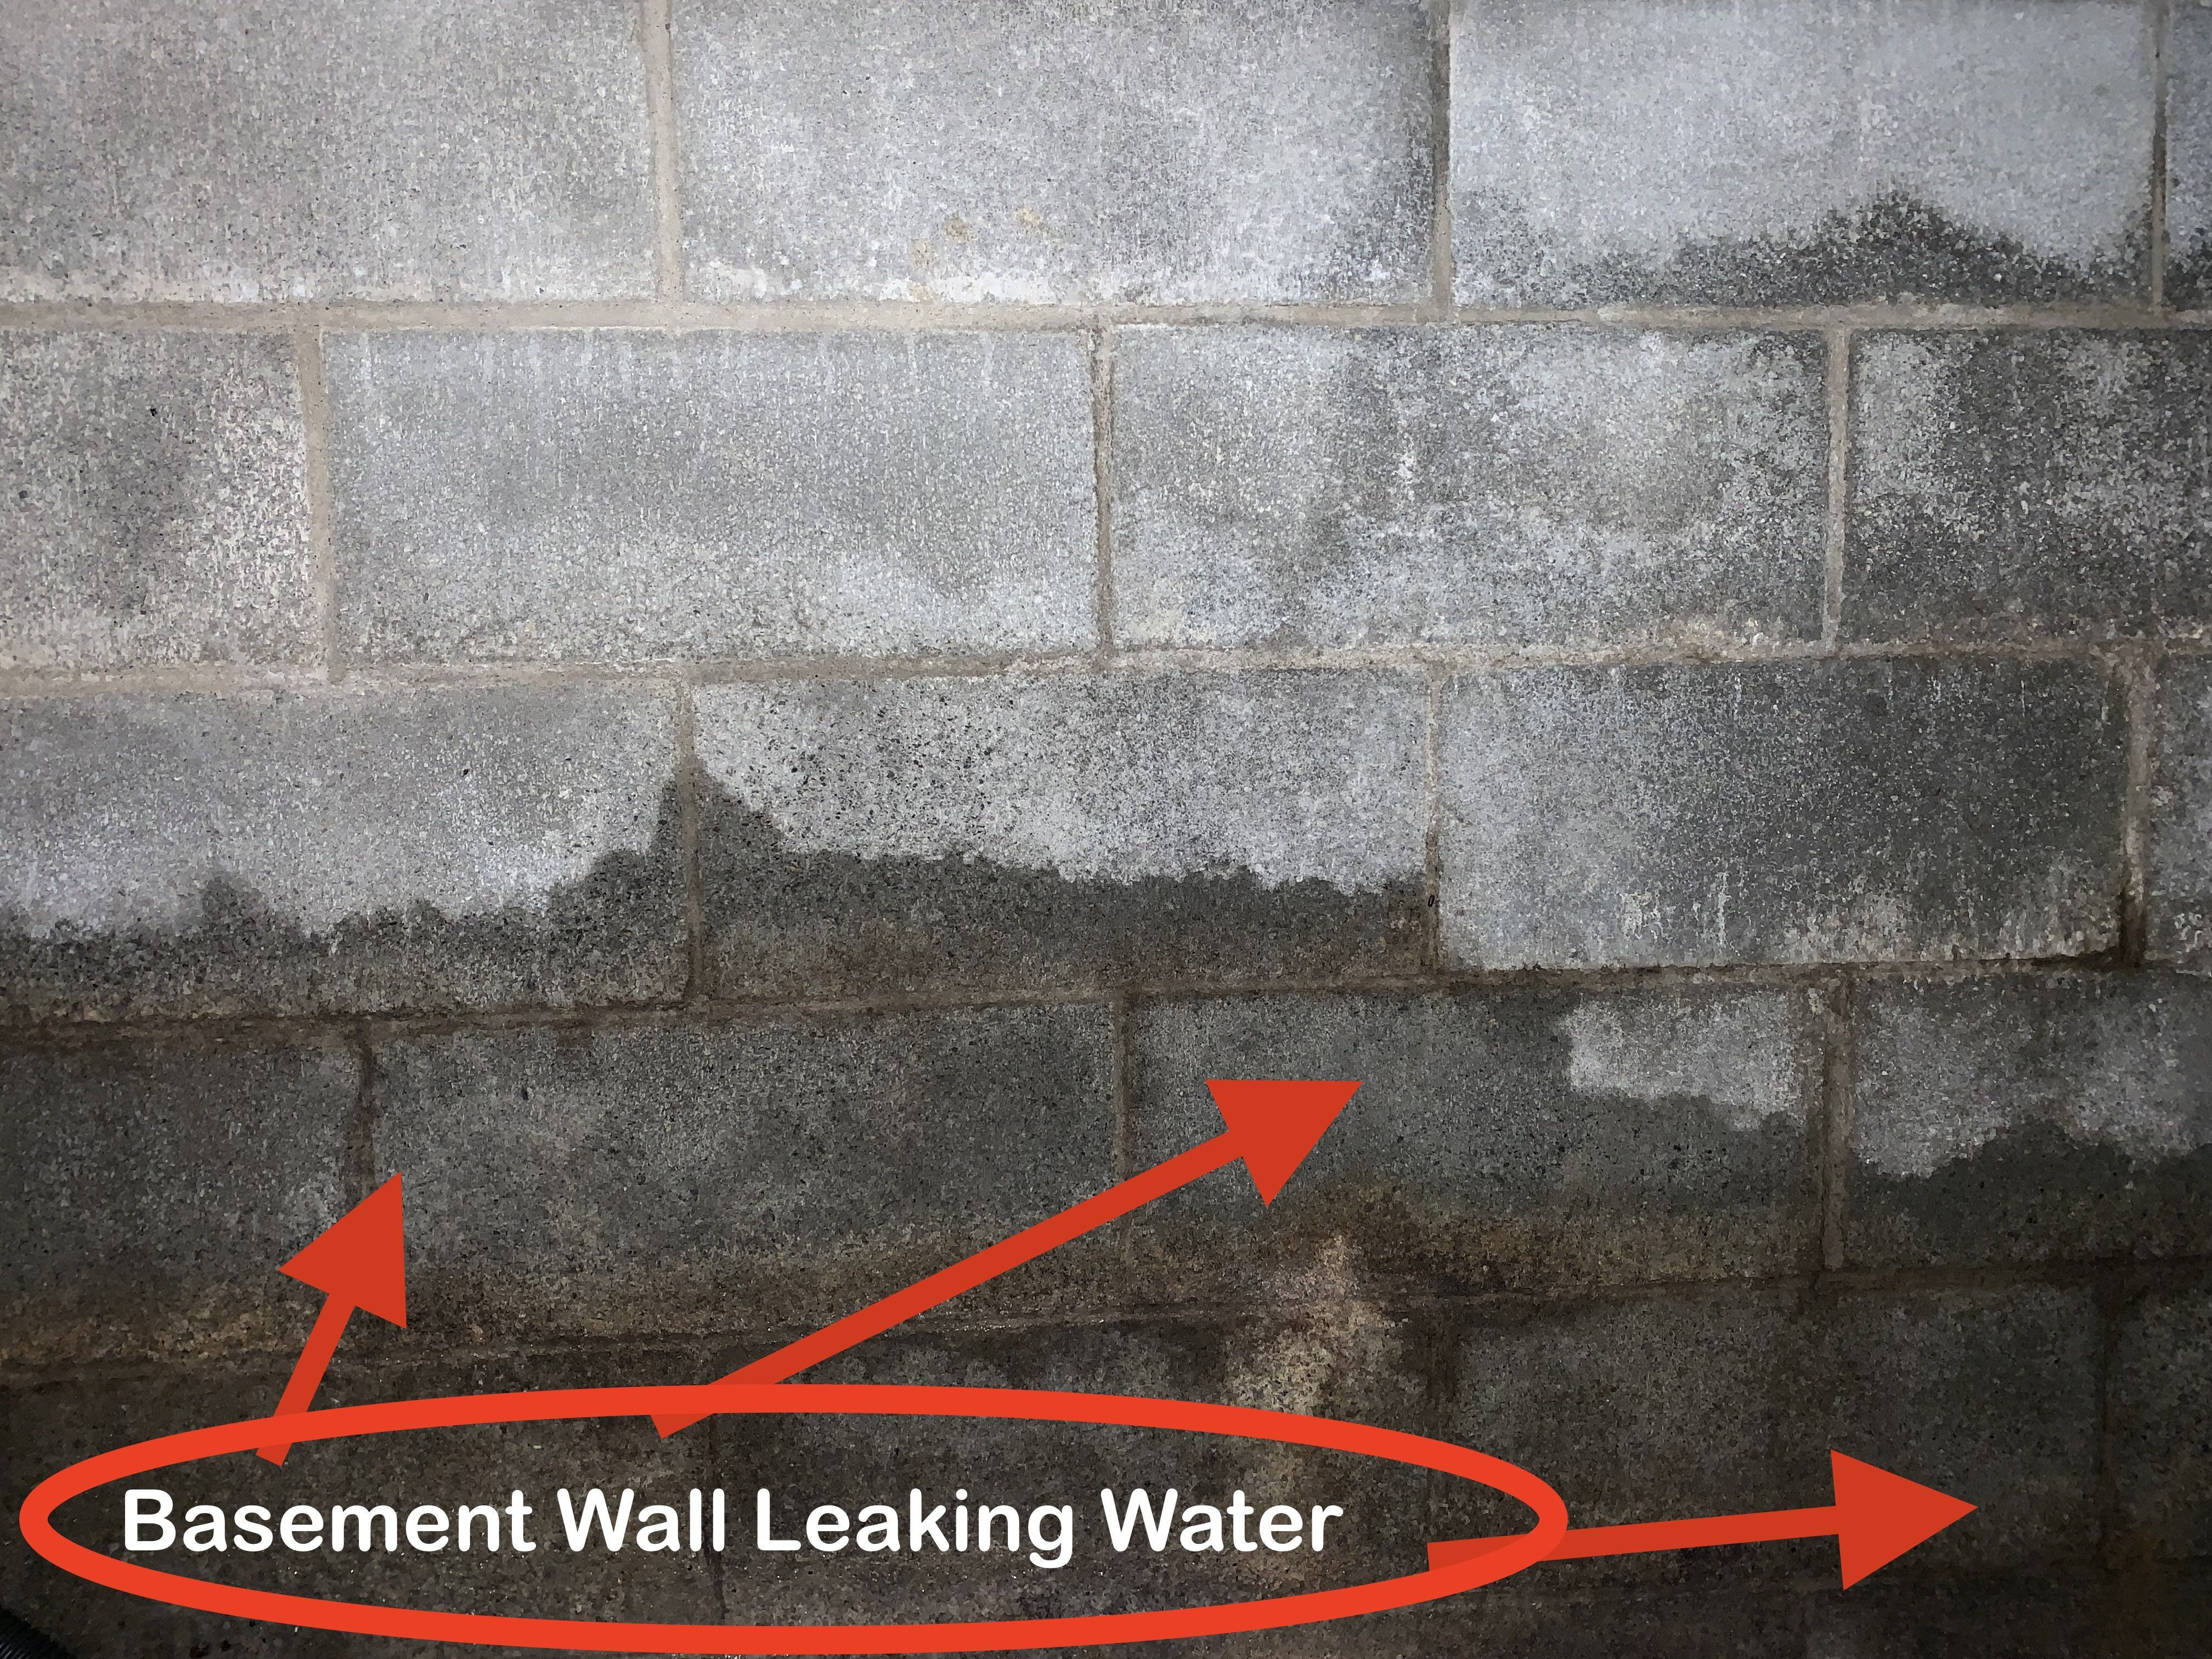 Wet Basement Wall Leaking Water From Exterior Drainage Problem Basement Waterproofing Inspection In 2020 Wet Basement Waterproofing Basement Basement Walls